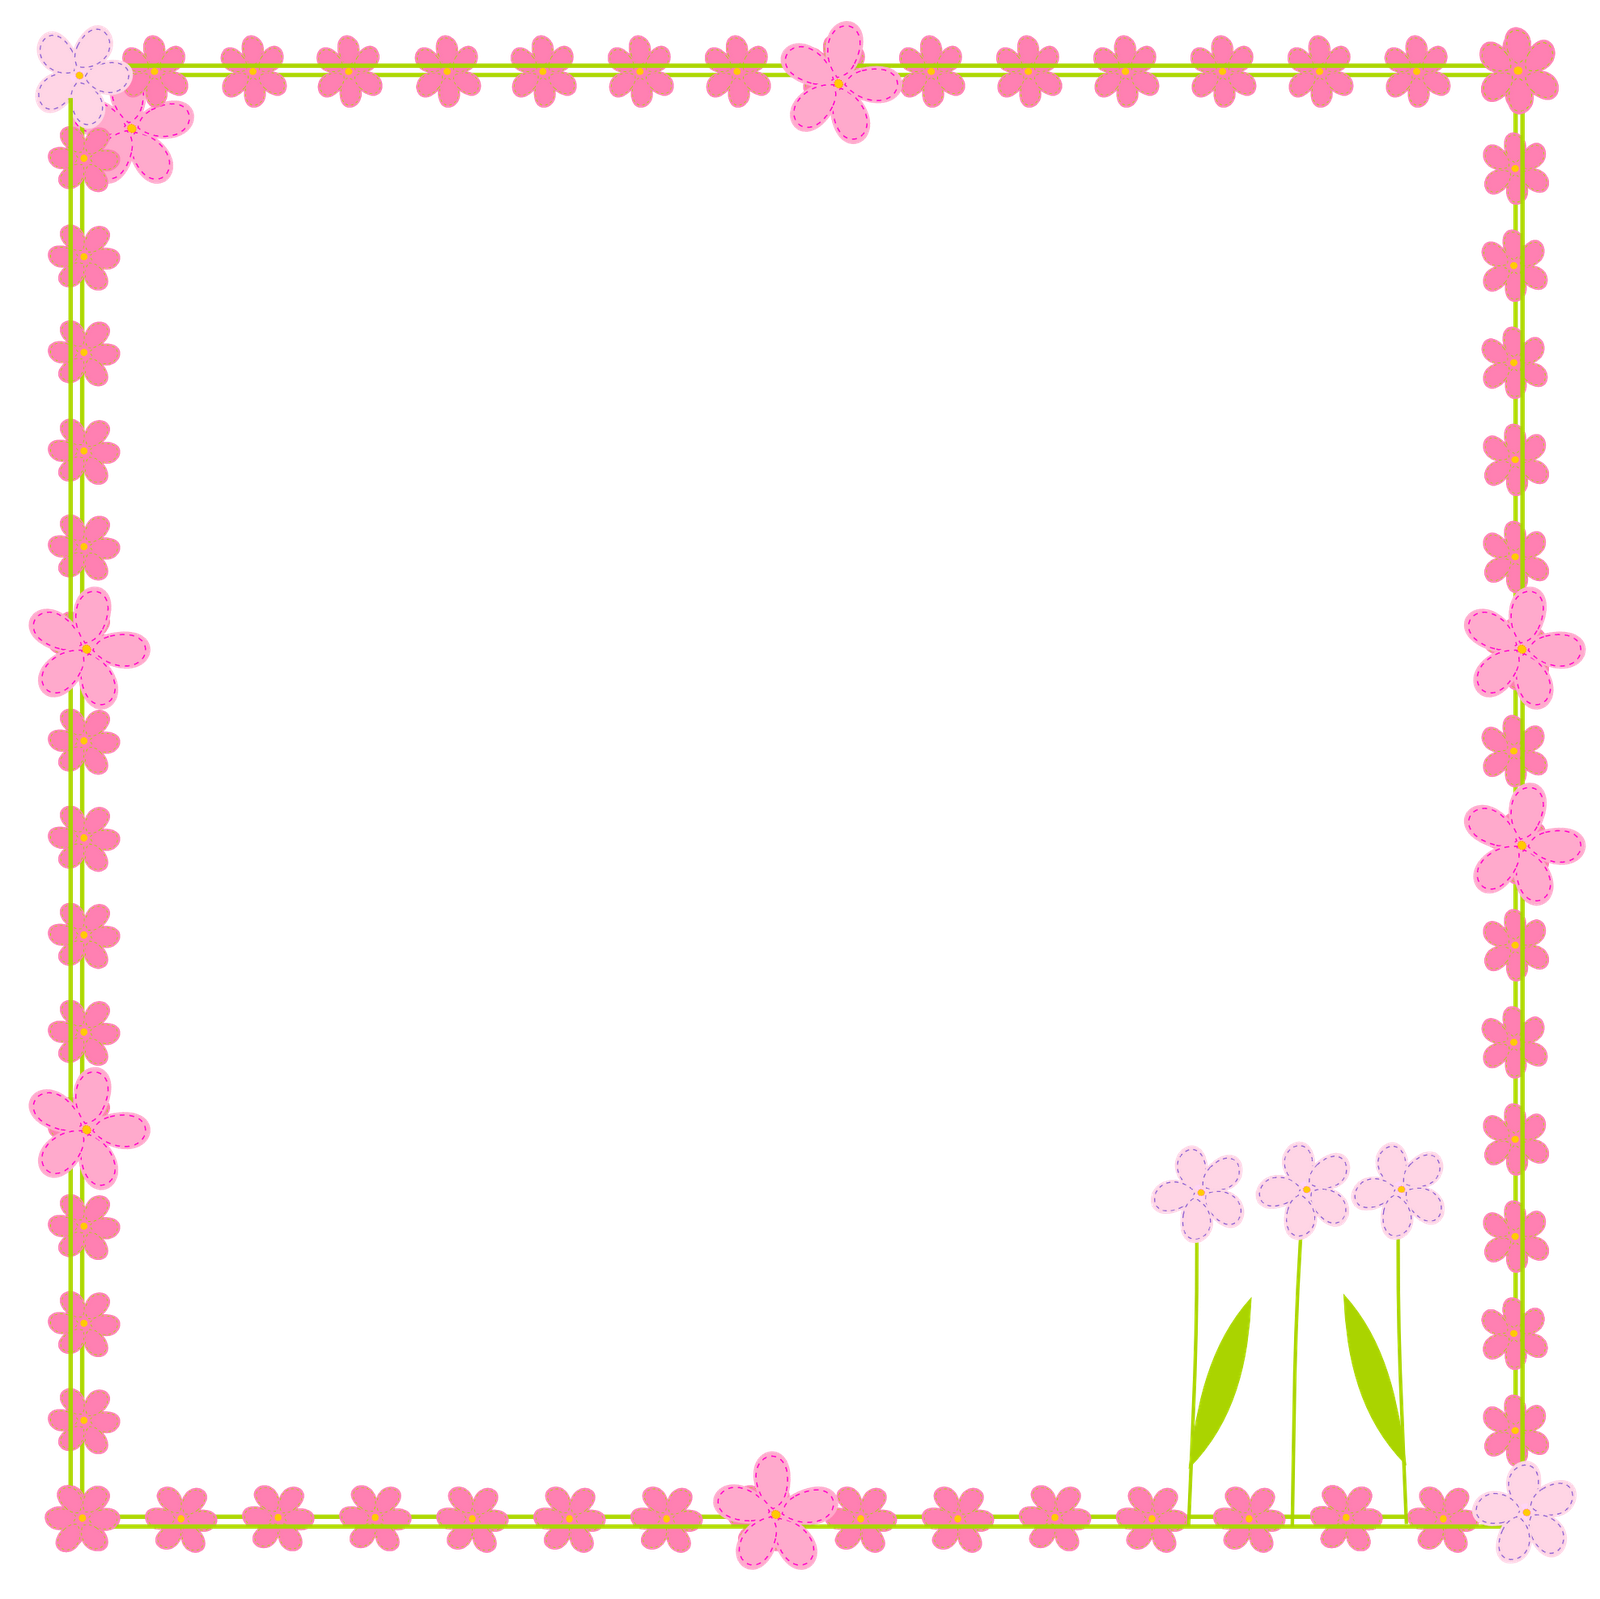 simple frame border. Antique Frame Border Png. 1600x1599 Flower Clipart Png Simple